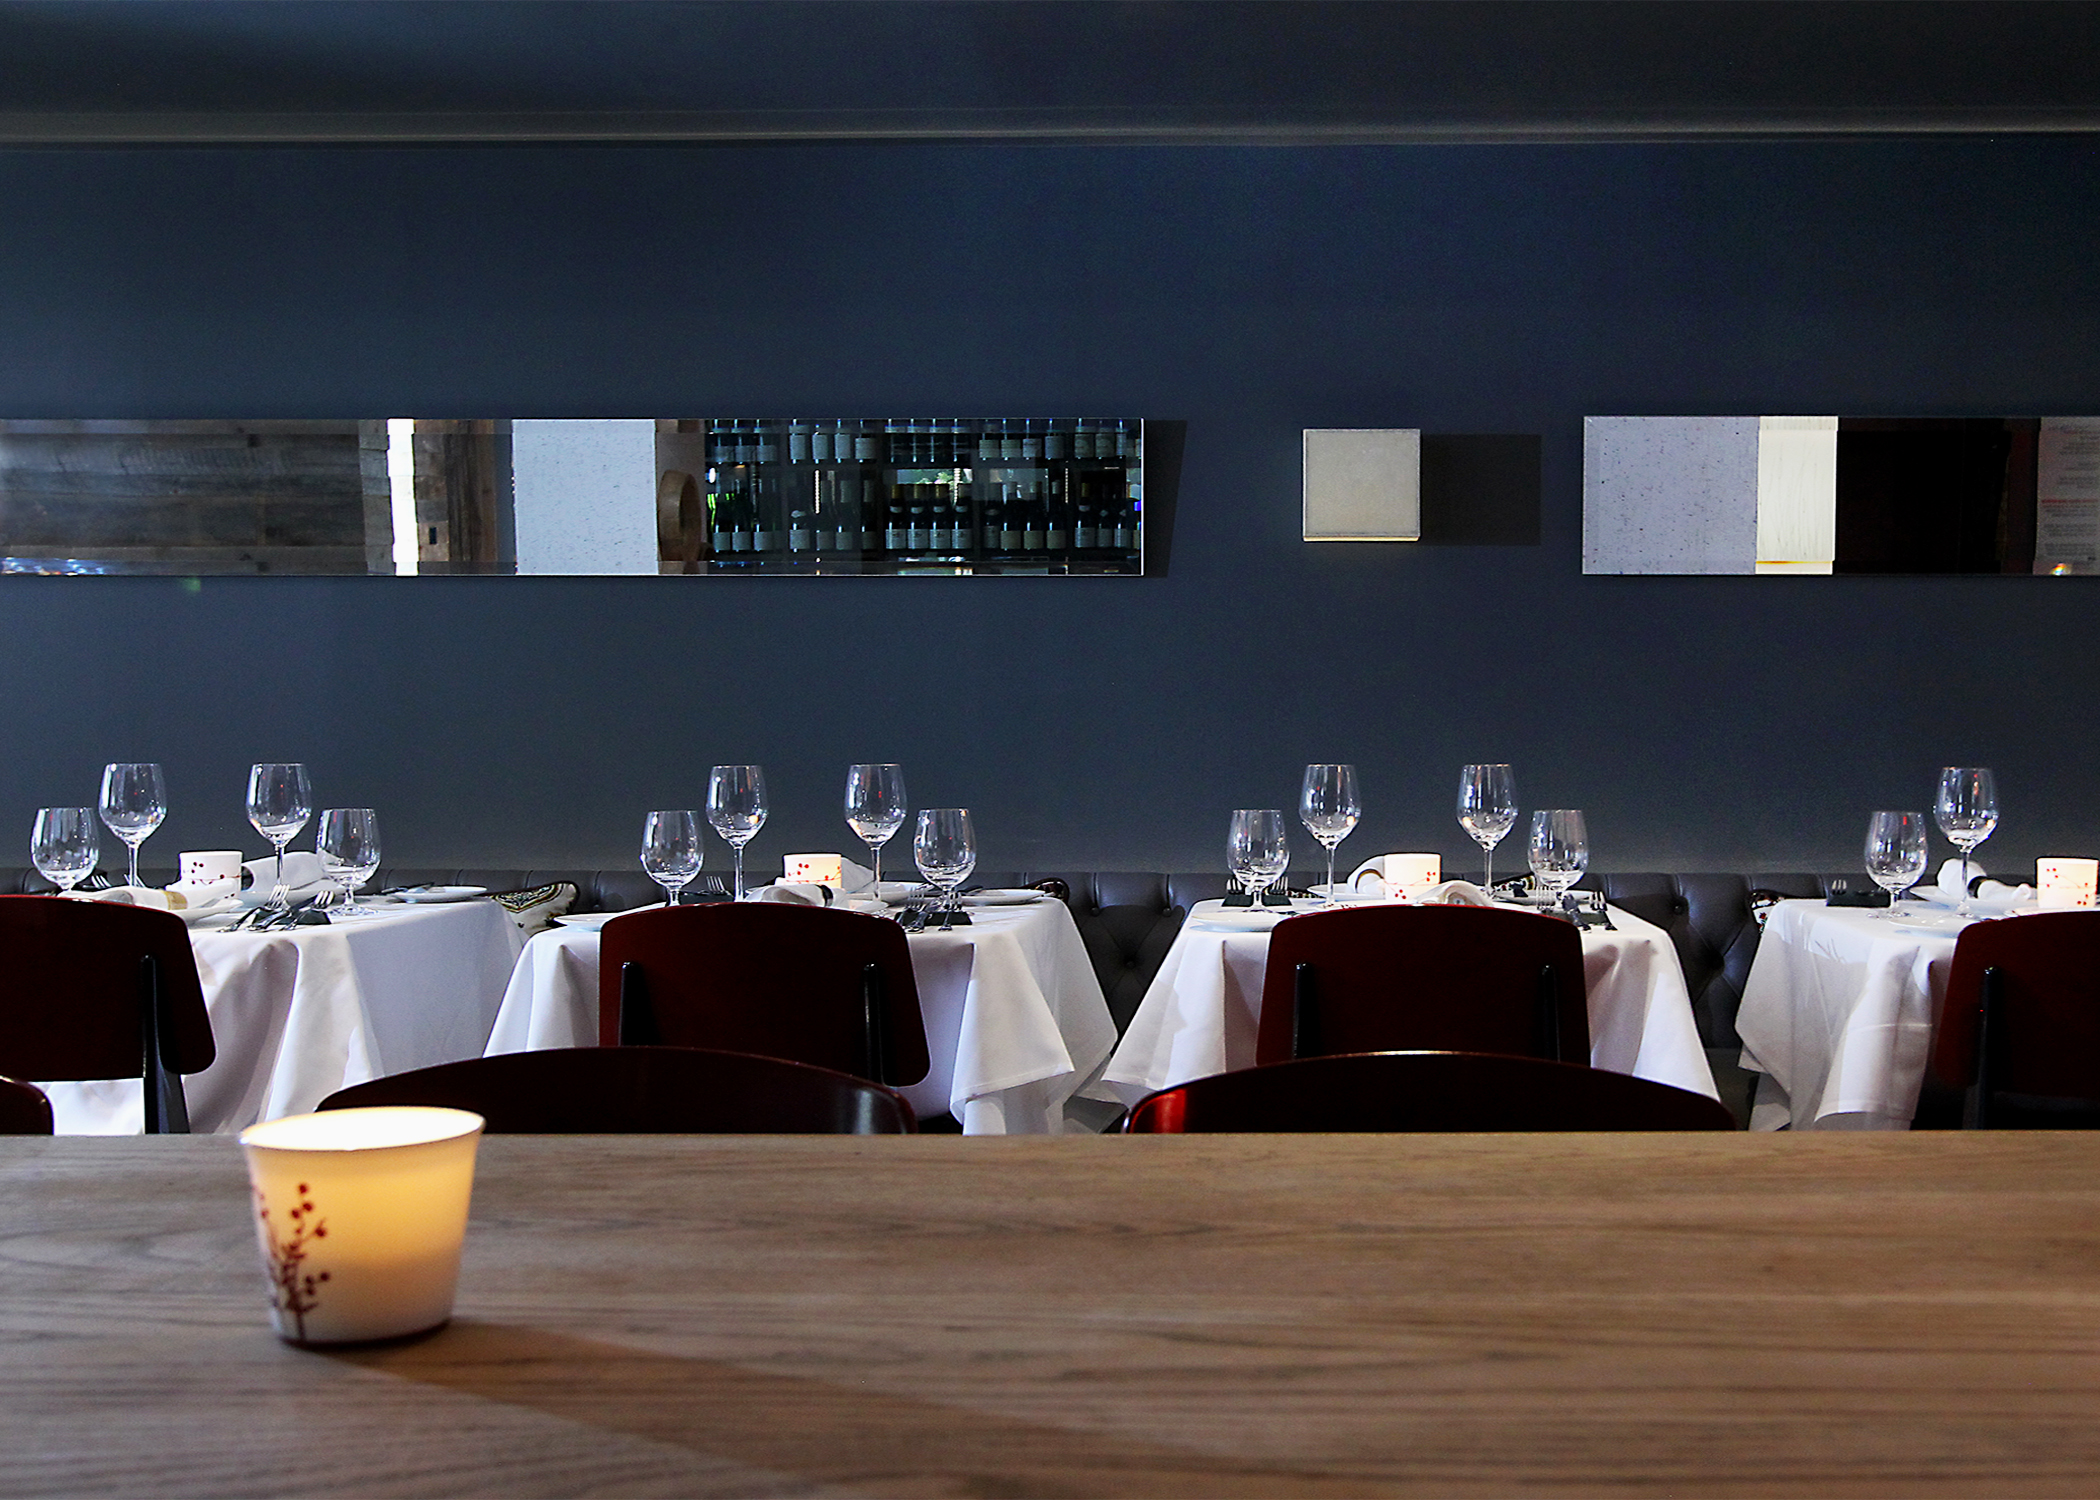 The main dining space was refreshed with a central floating oak farm table, cork wall/ceiling linings and carefully located lighting, mirrors and artwork for an elevated fine dining experience.